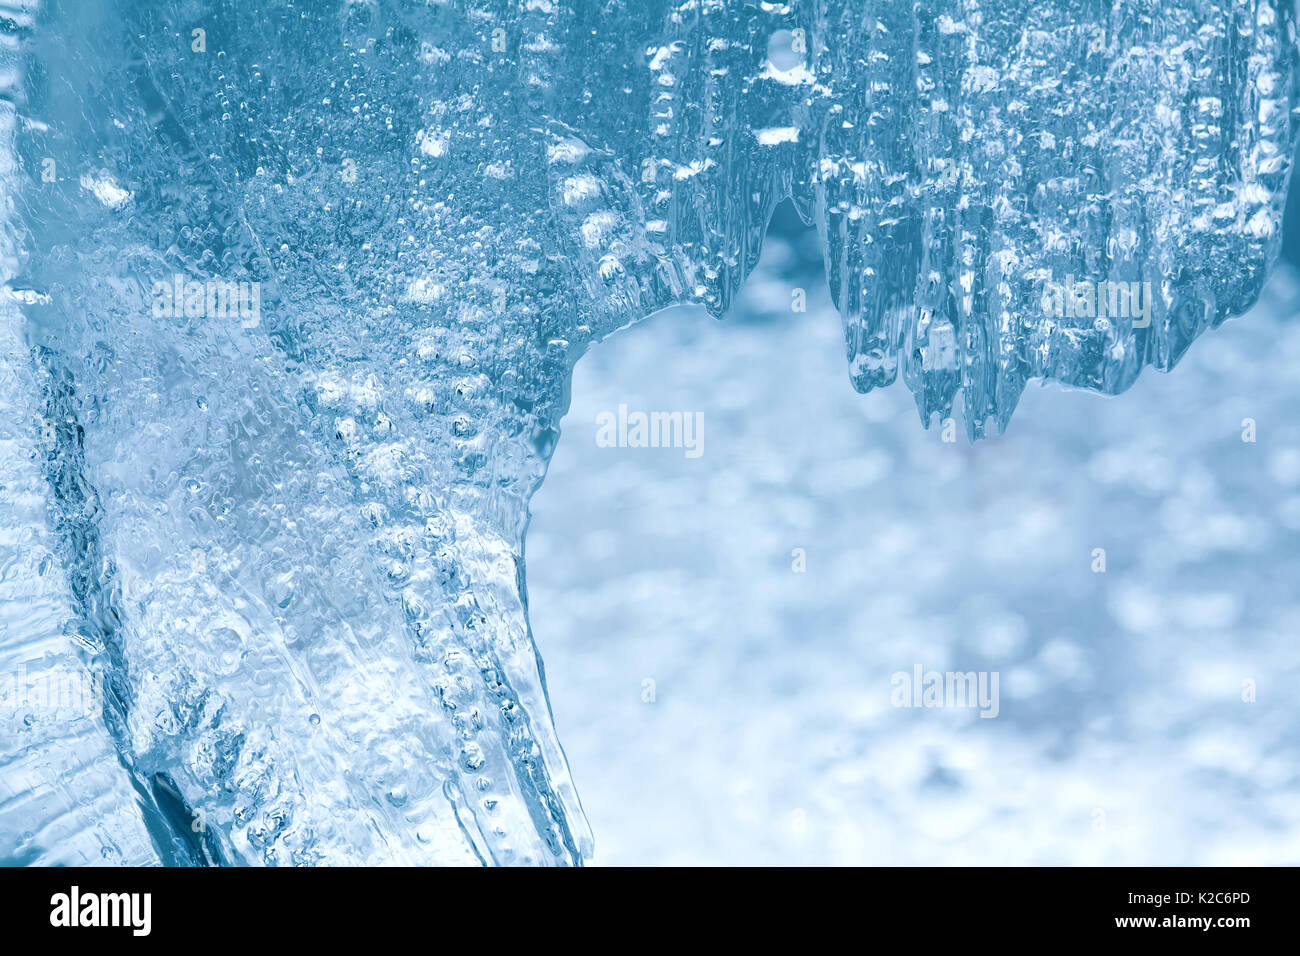 icy background.html